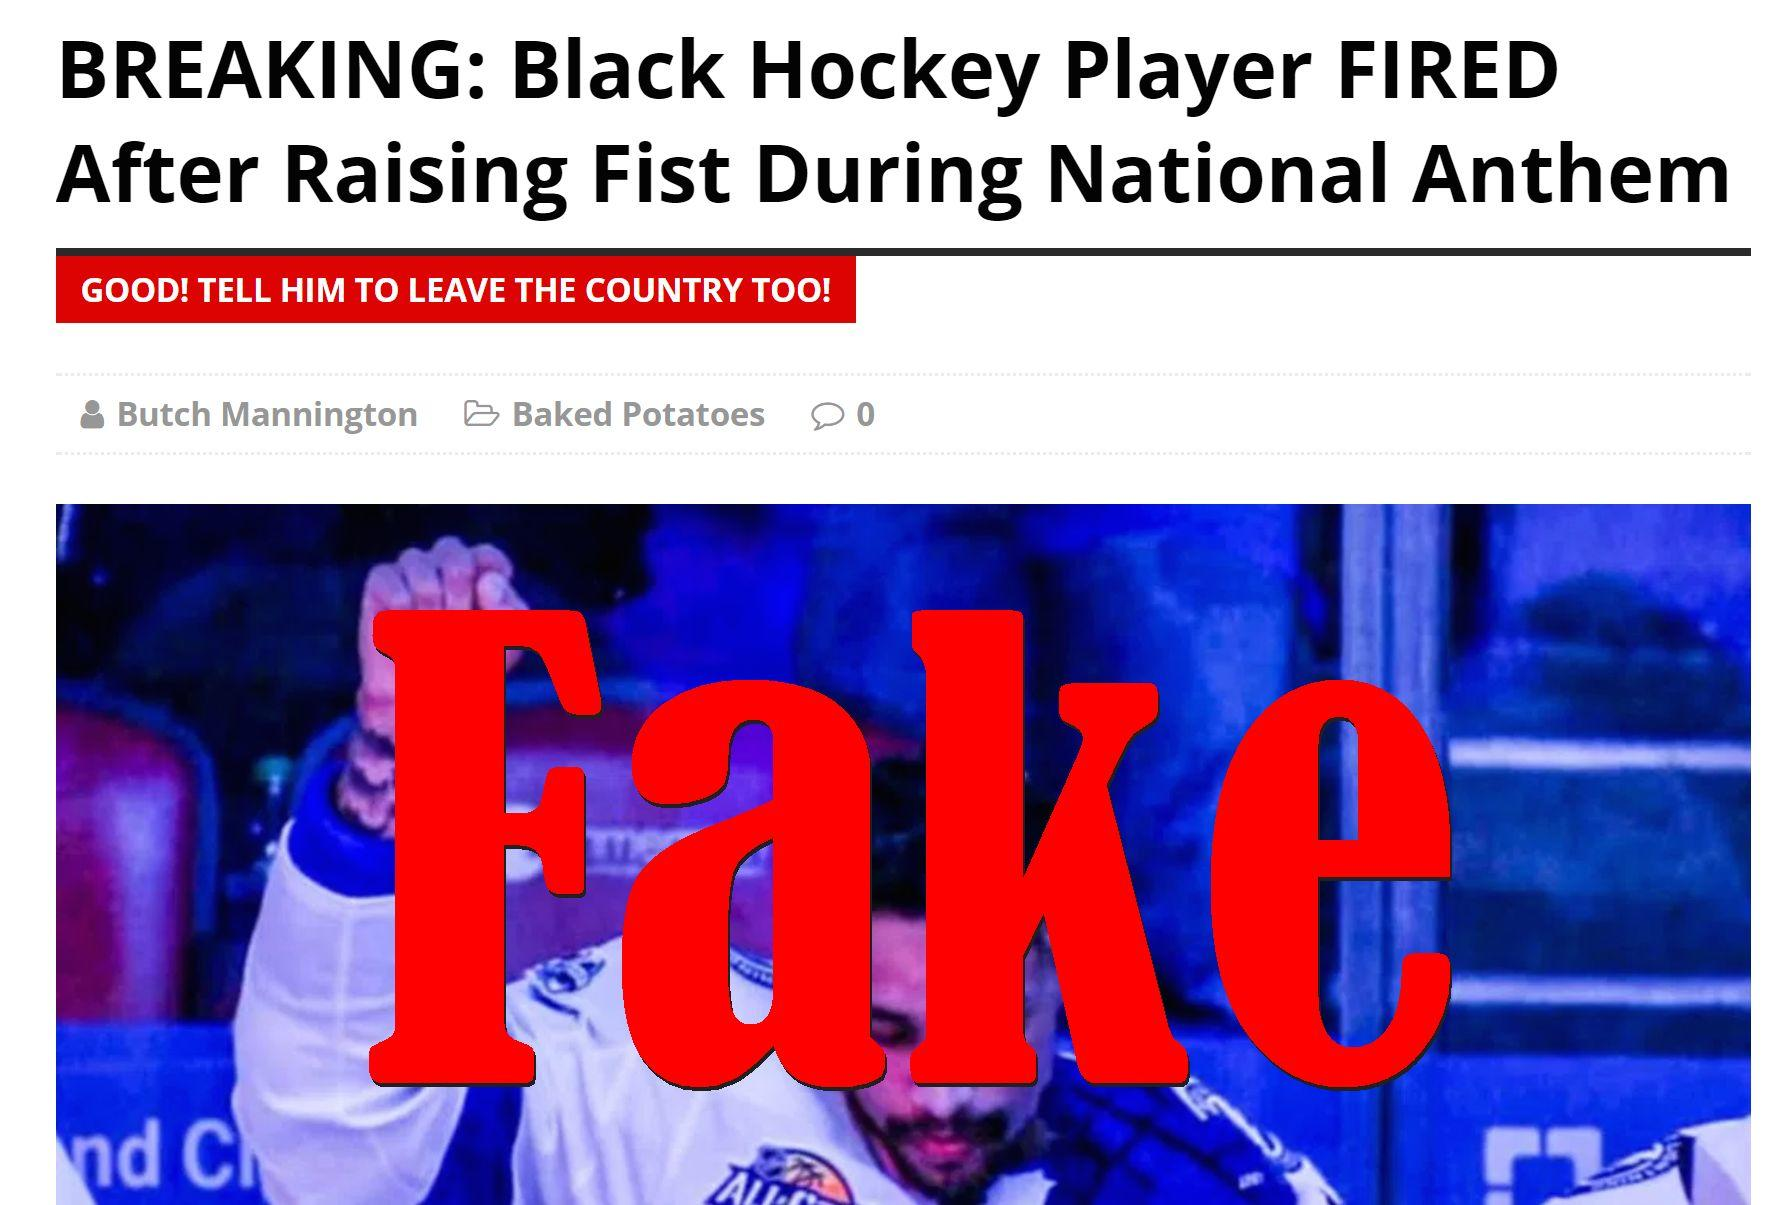 Fake News: Black Hockey Player NOT Fired After Raising Fist During National Anthem